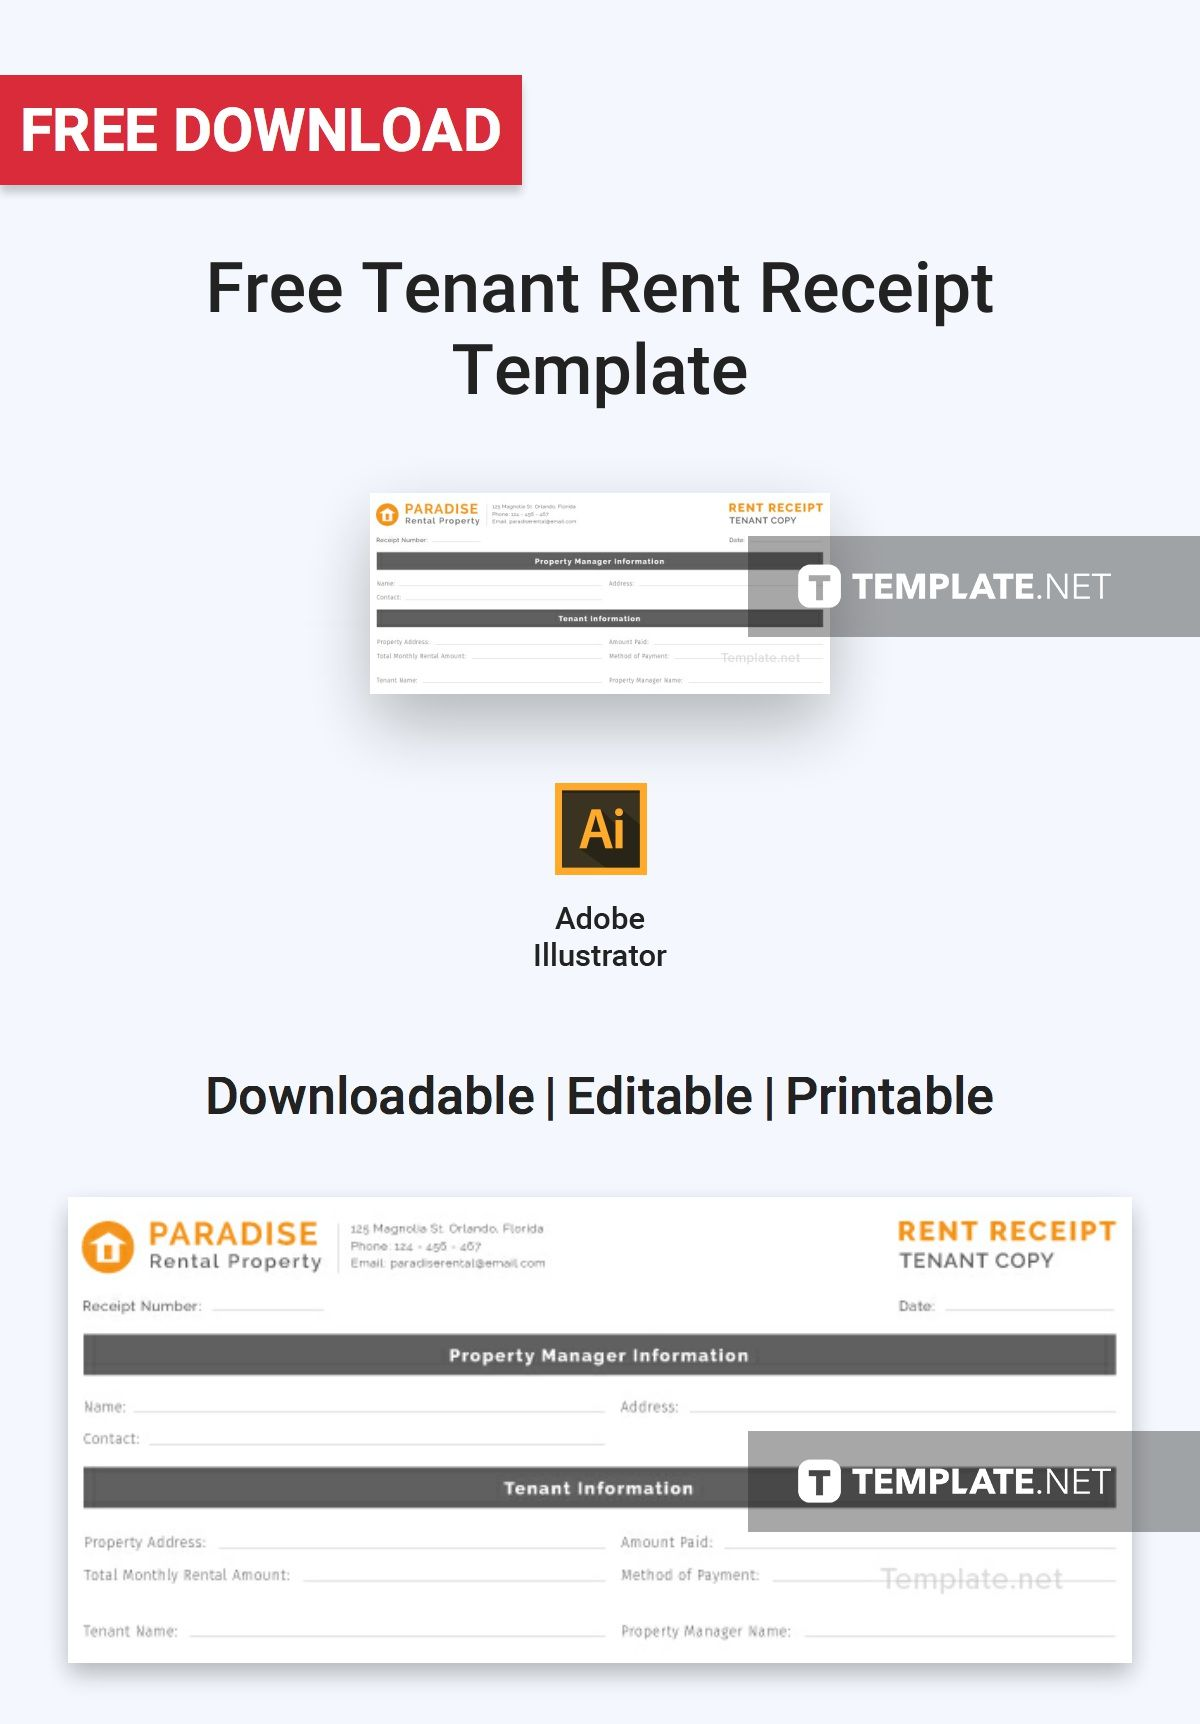 Tenant Rent Receipt Template Free Pdf Google Docs Google Sheets Excel Word Template Net Receipt Template Templates Being A Landlord